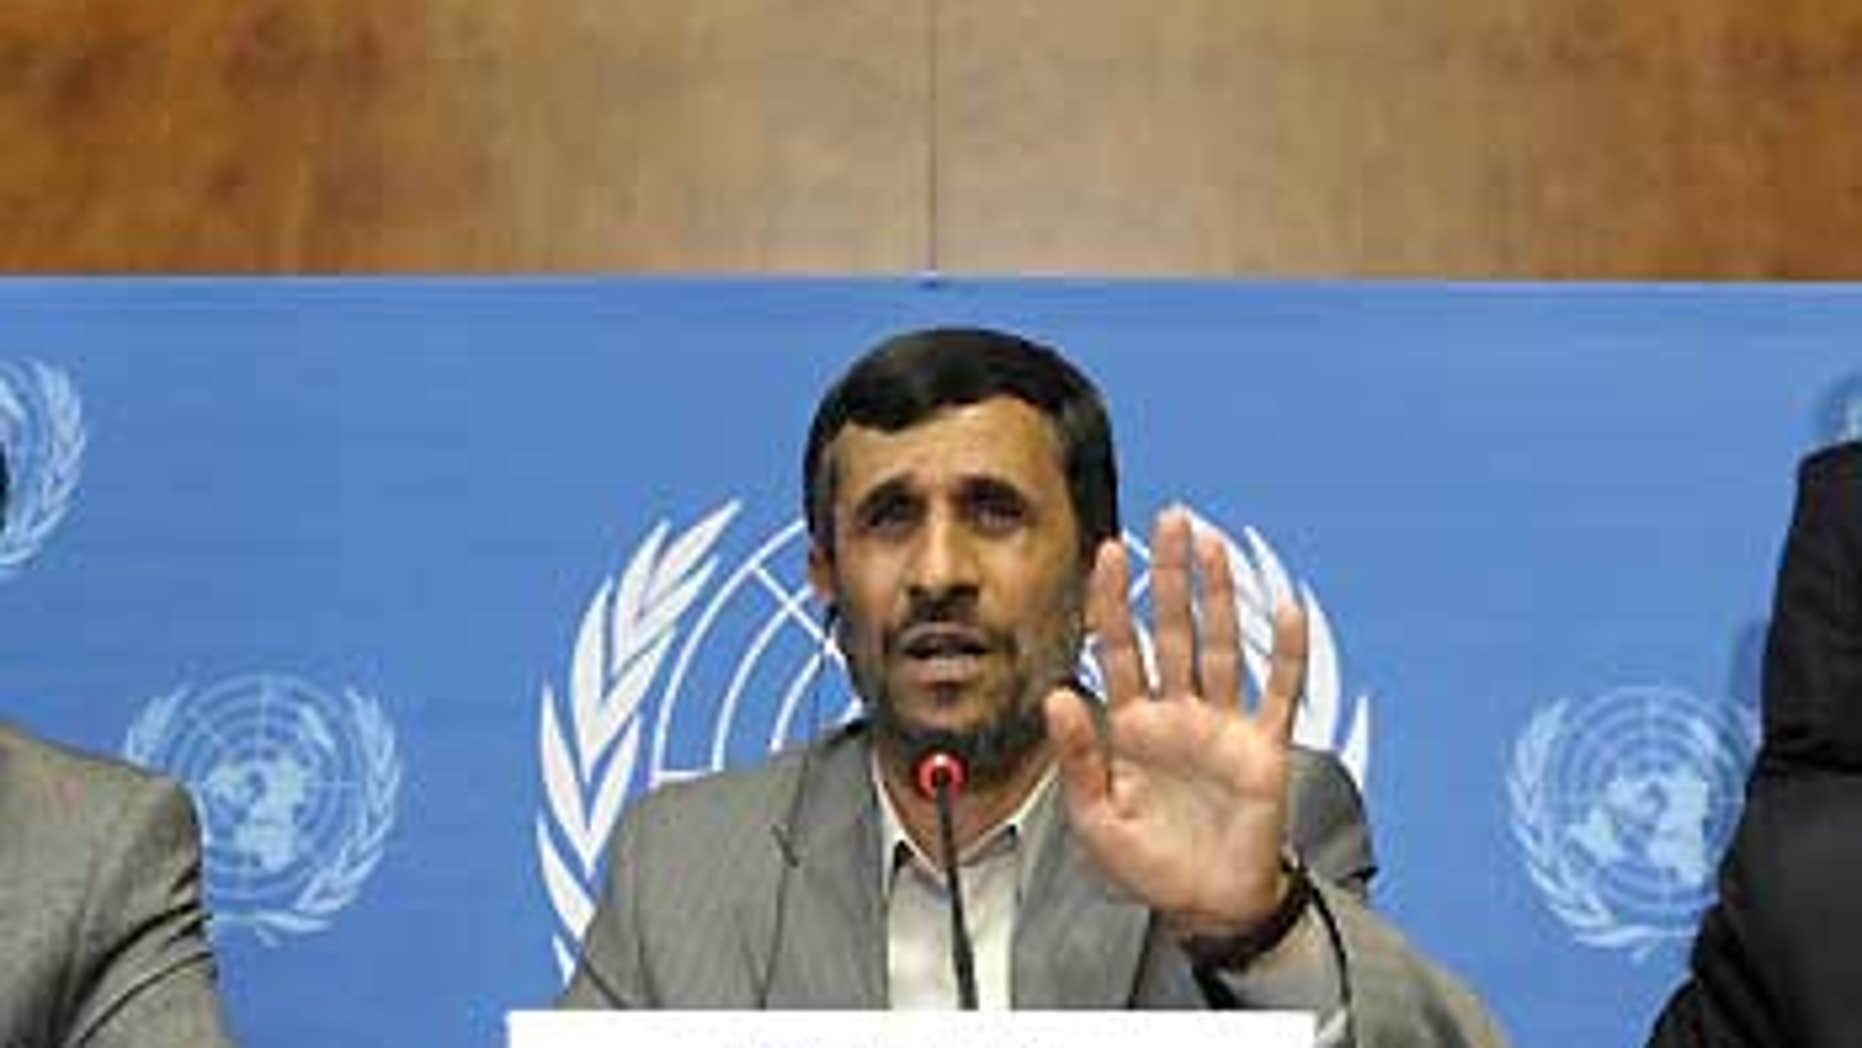 April 20: Iranian President Mahmoud Ahmadinejad speaks during a press conference at the U.N.'s Conference against Racism in Geneva.